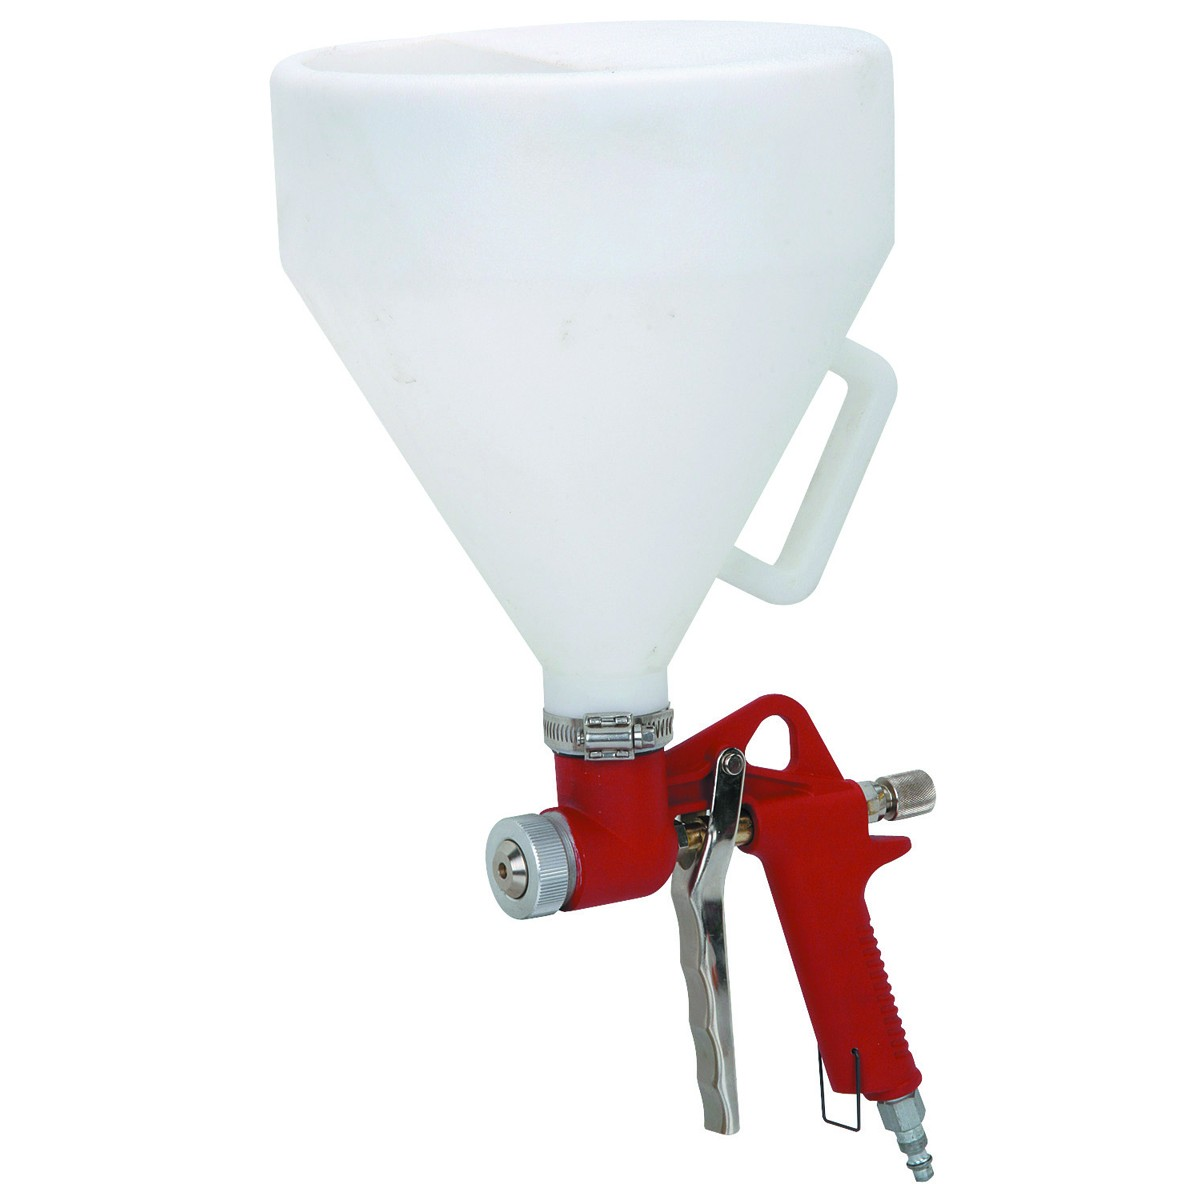 1-1/2 gallon Gravity Feed Texture Air Spray Gun